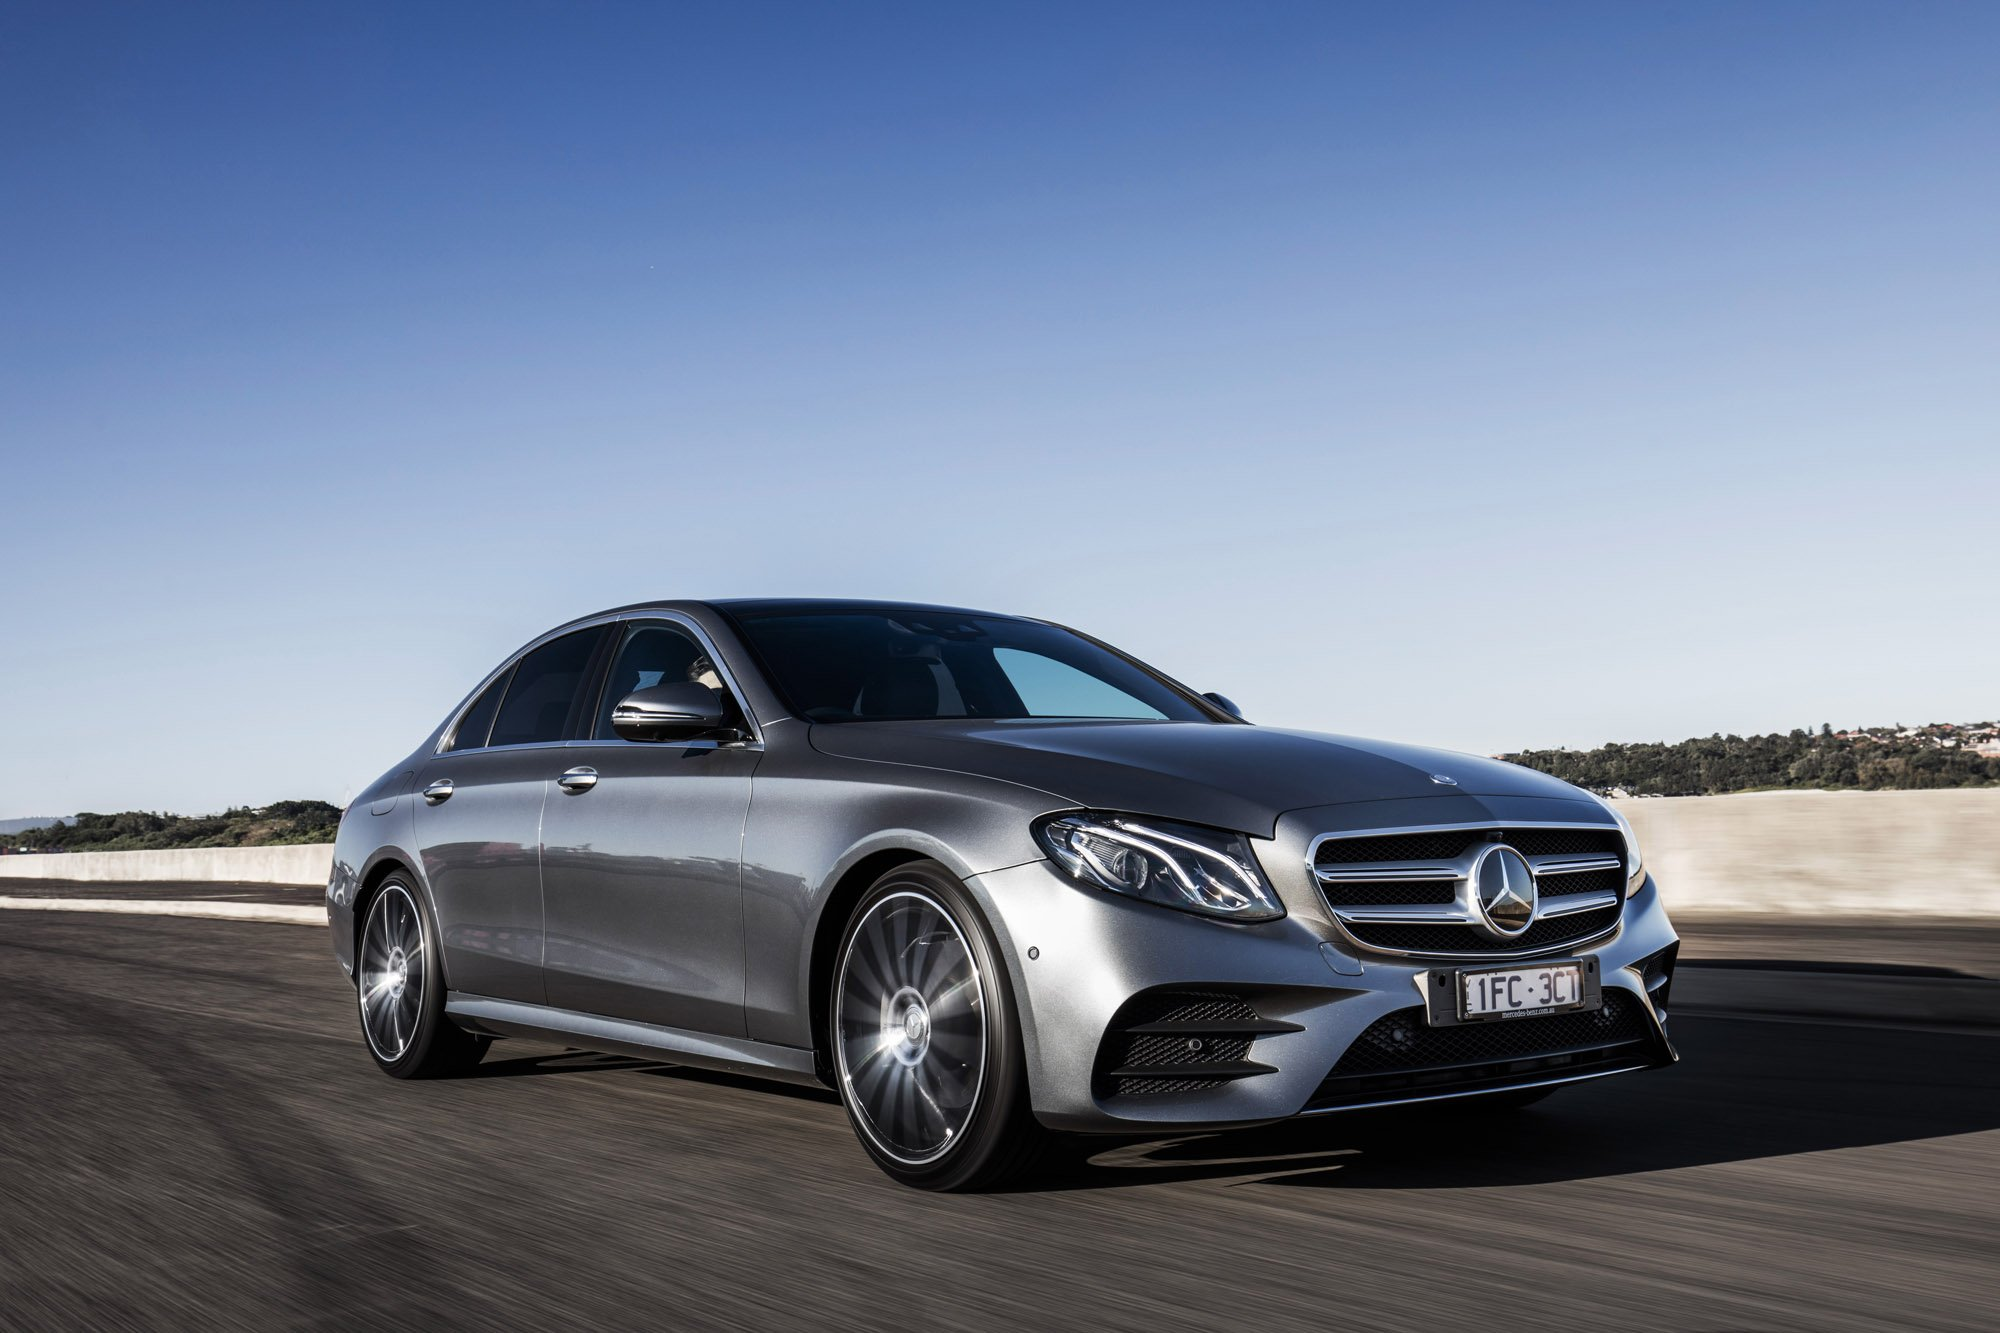 2016 mercedes benz e class pricing and specifications for How much mercedes benz cost